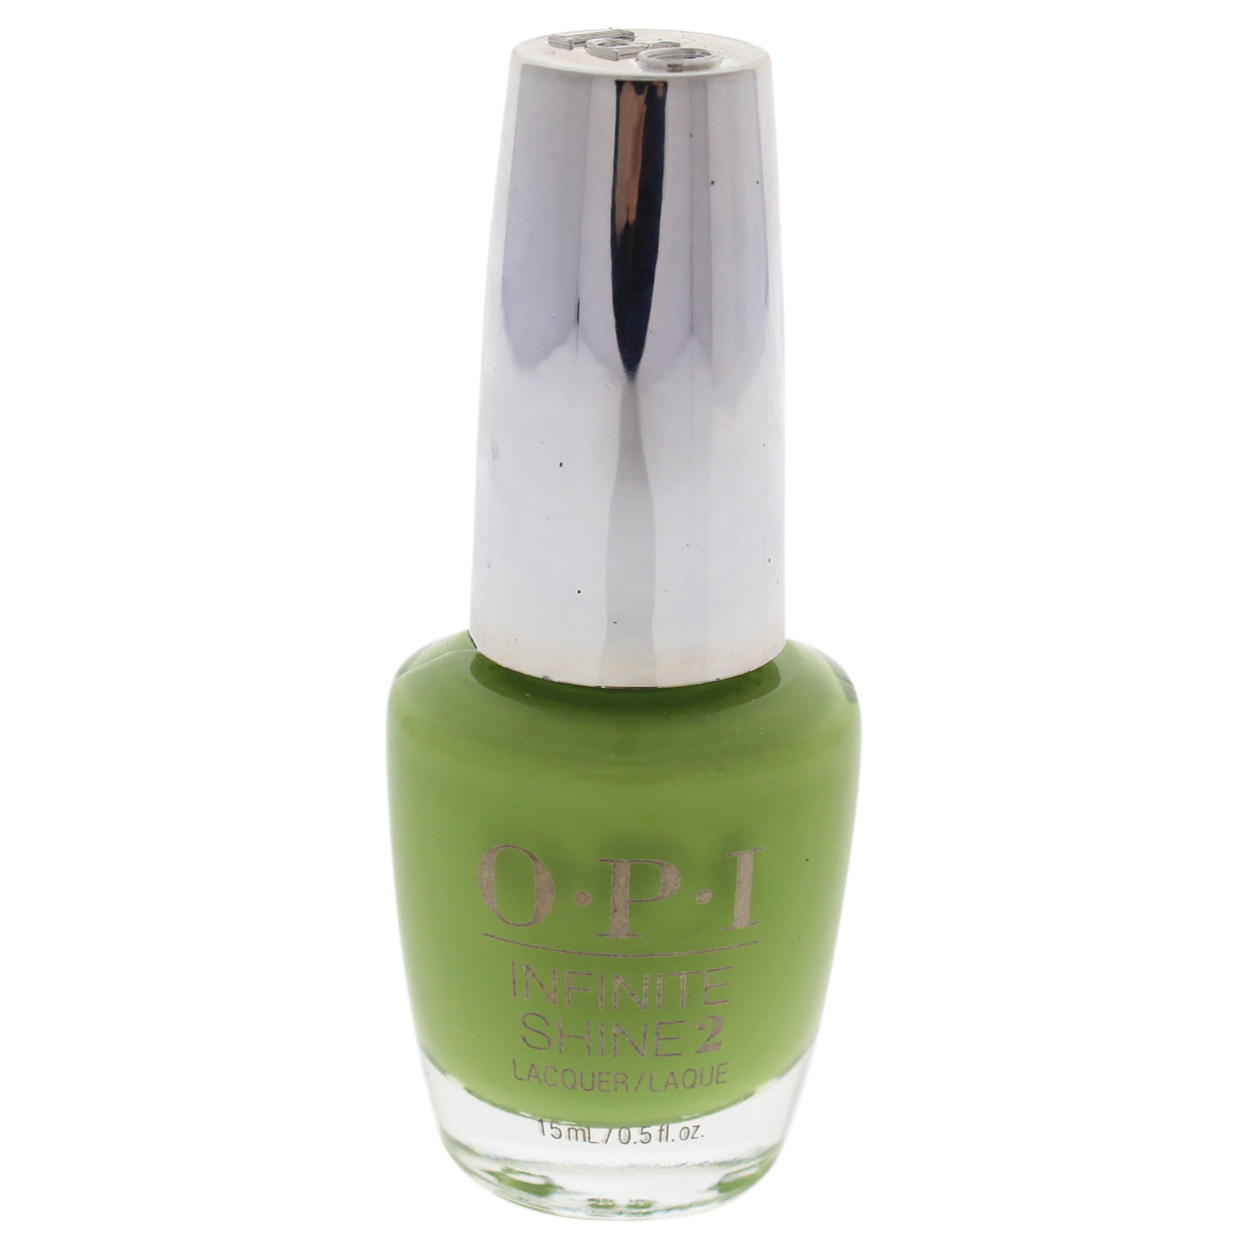 Infinite Shine 2 Lacquer Is L20 To The Finish Lime By Opi For Women 0 5 Oz Nail Polish In